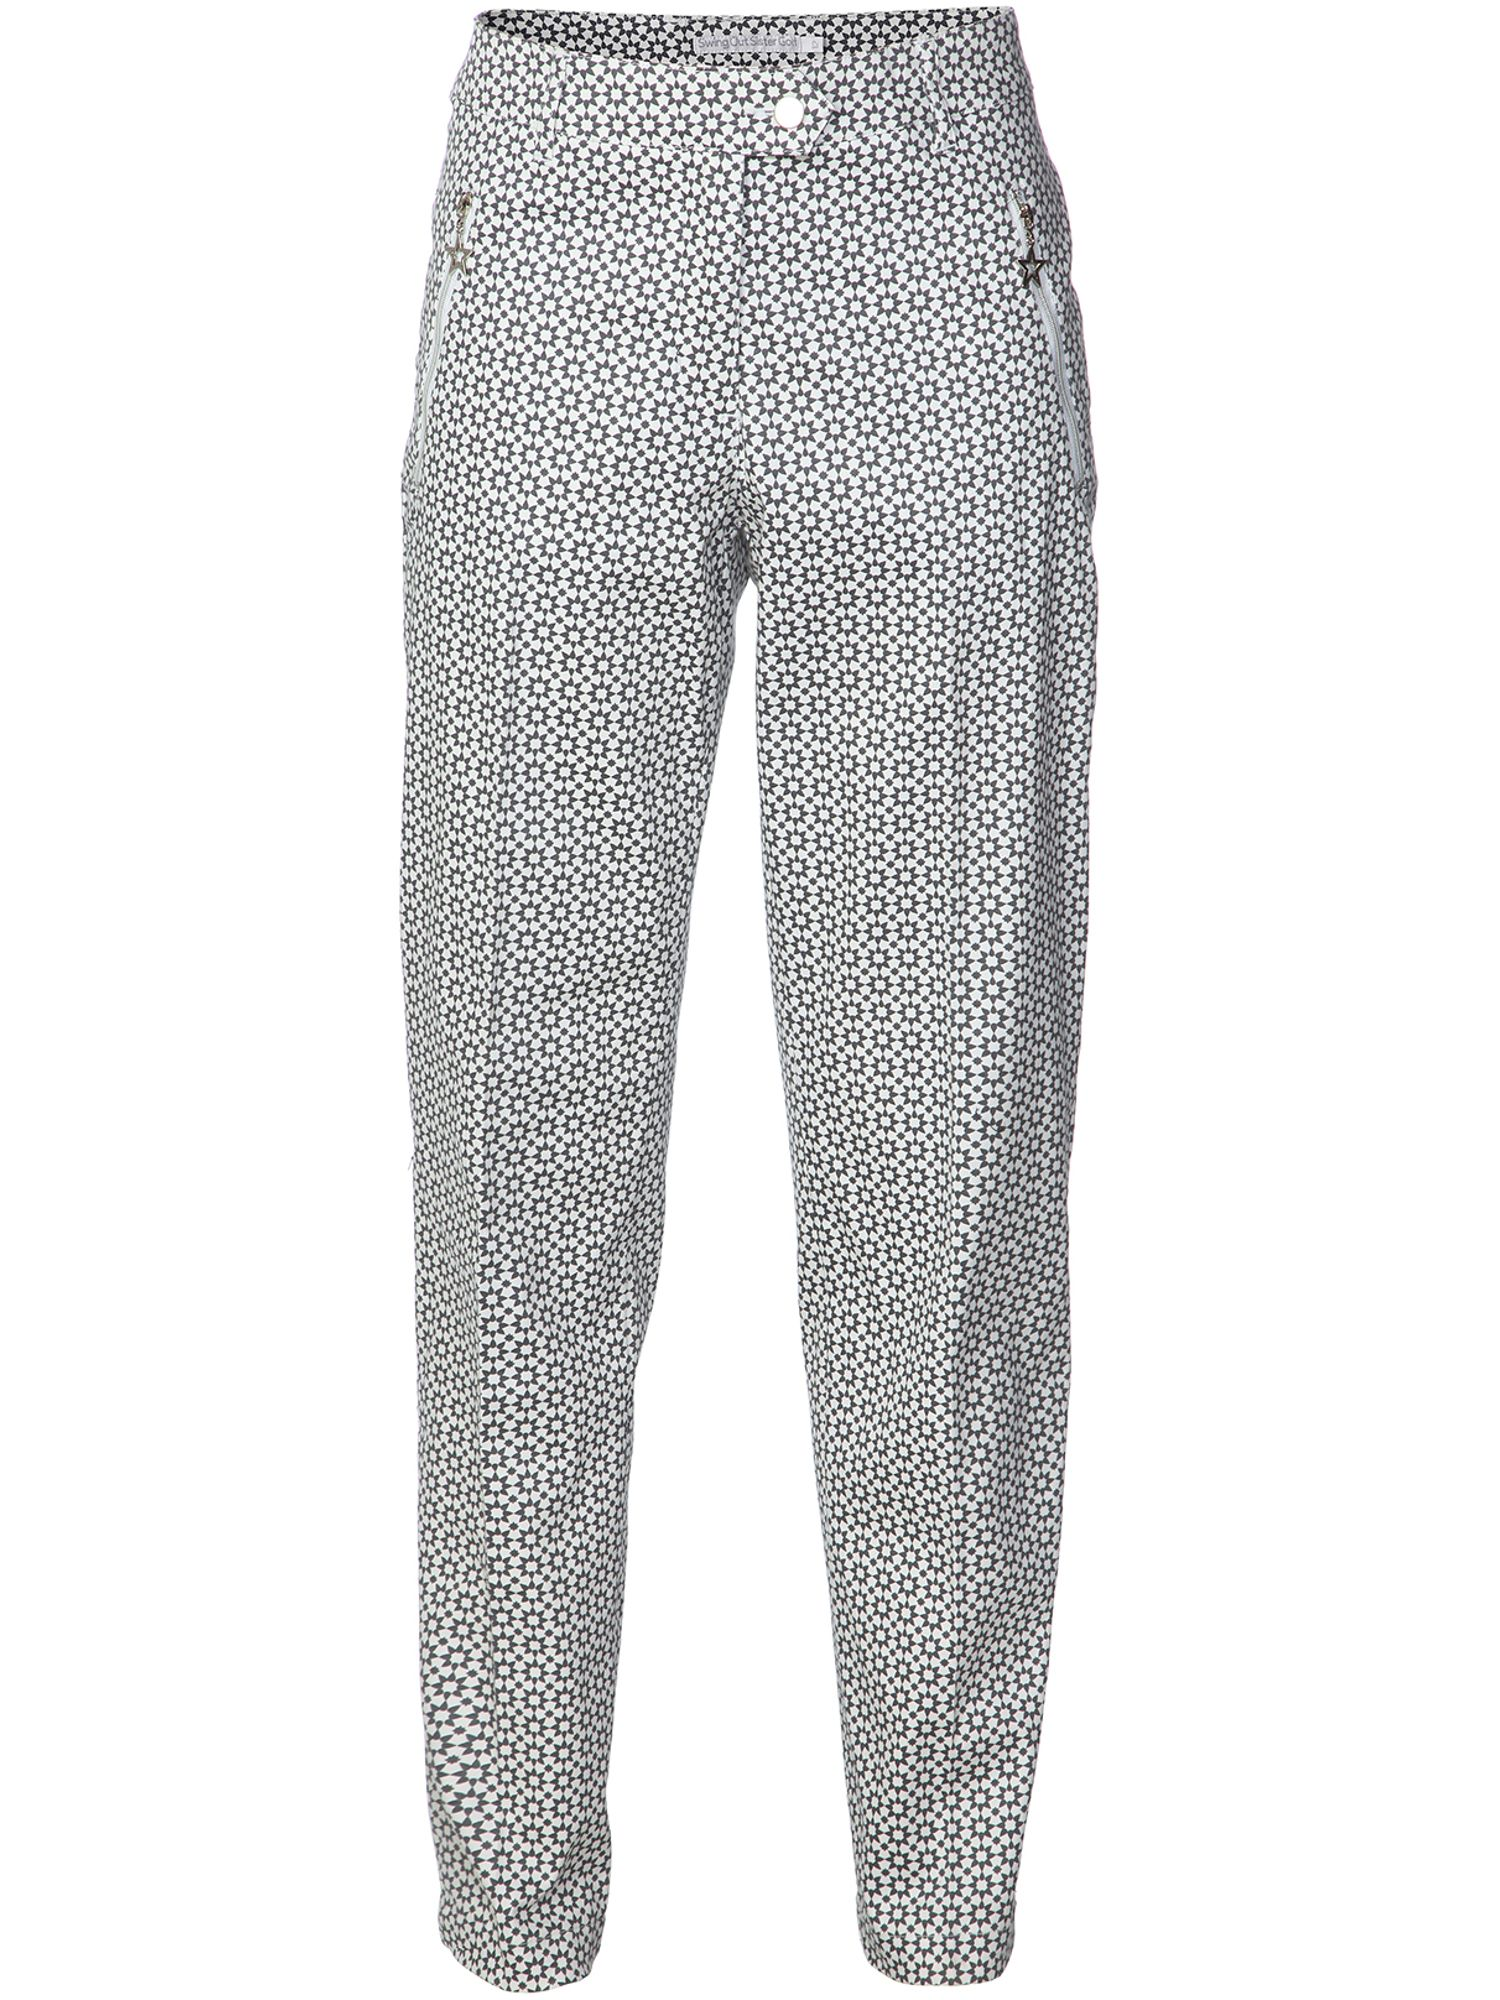 Swing Out Sister Diana 78 Trousers, Grey